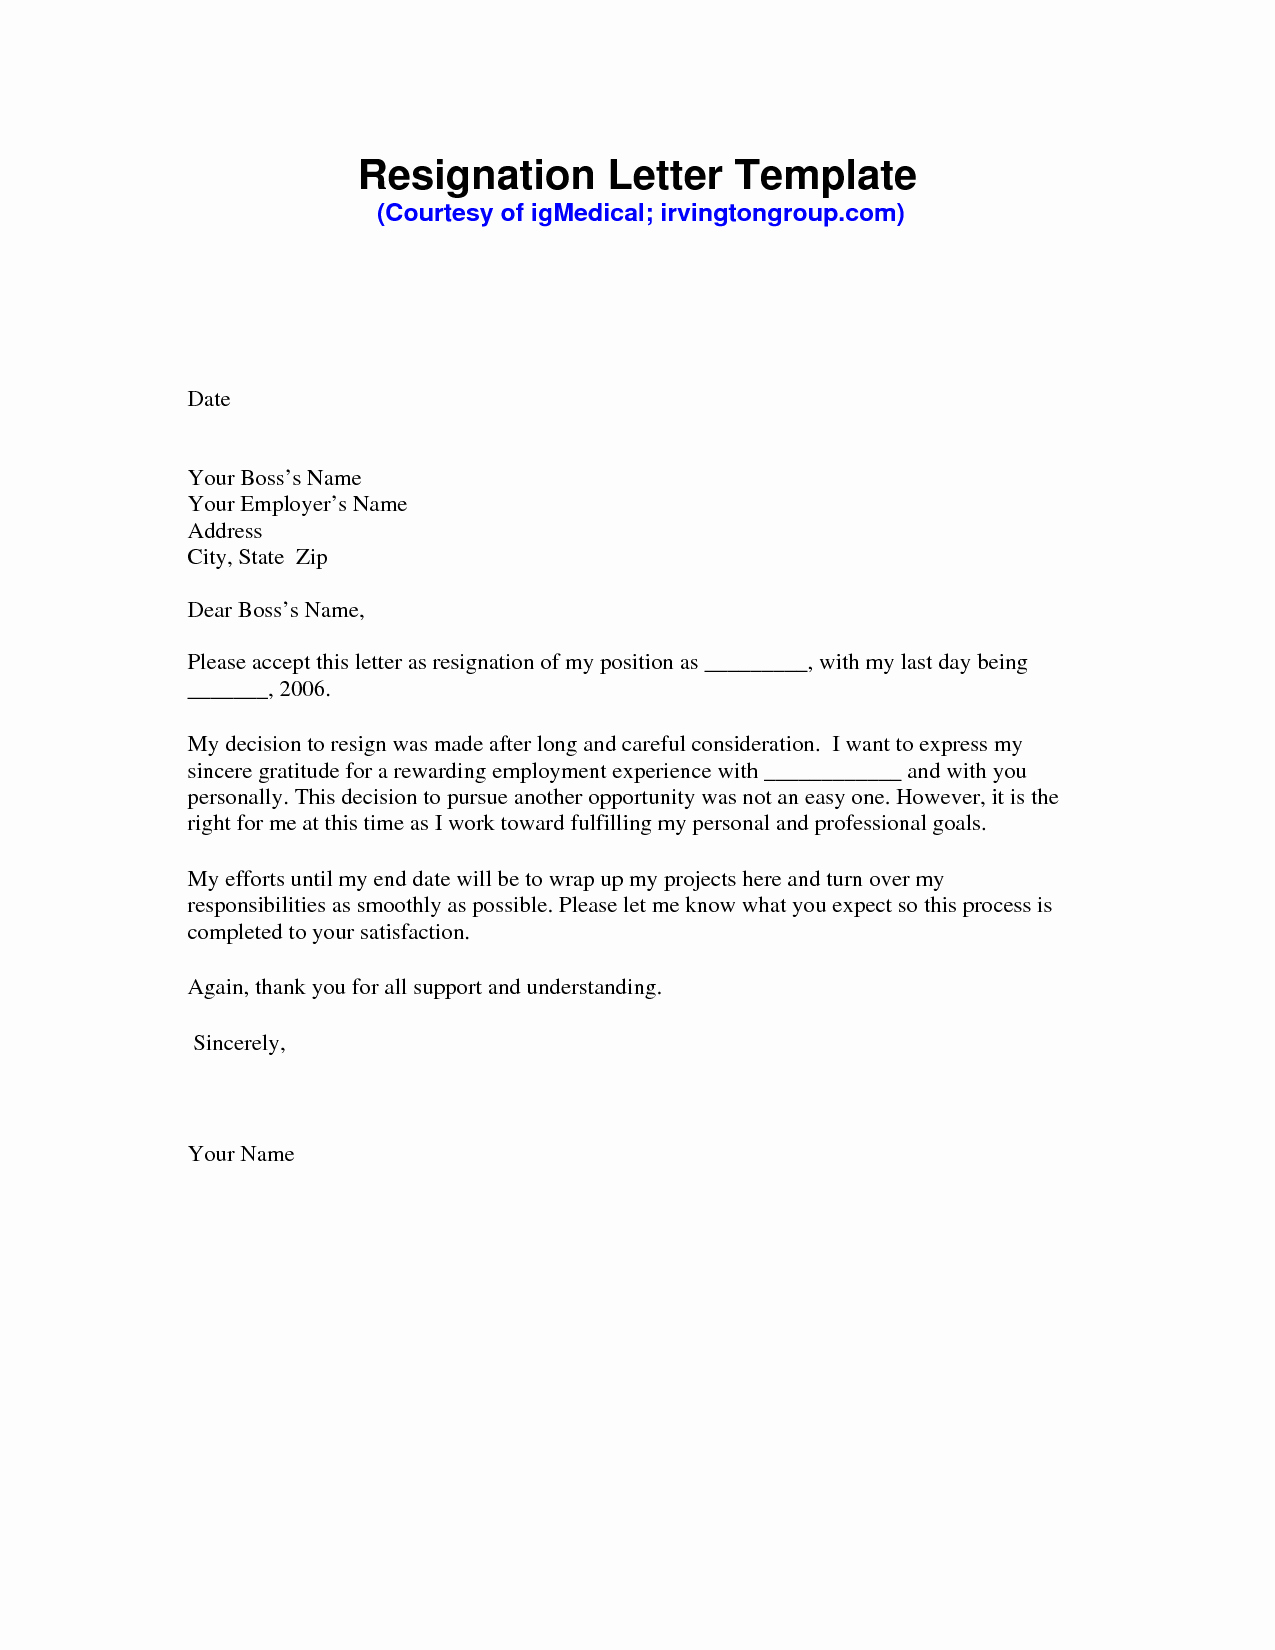 Resignation Letter Templates for Word Luxury Resignation Letter Sample Pdf